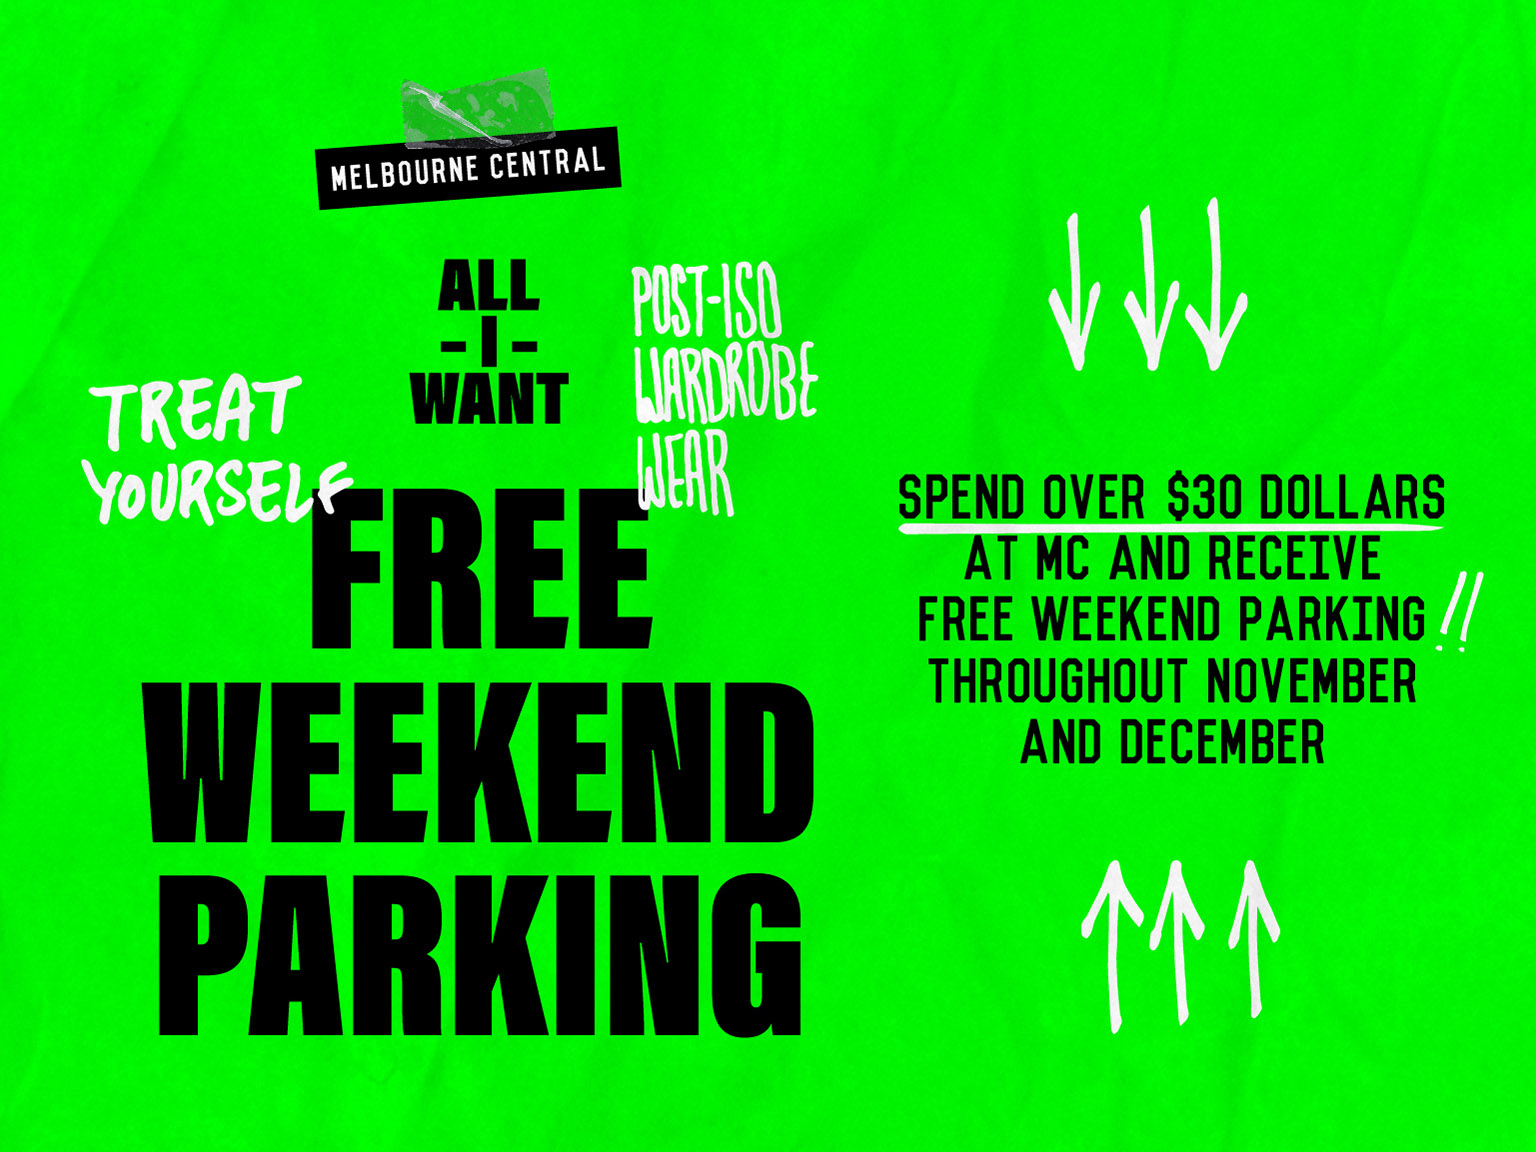 Free Weekend Parking